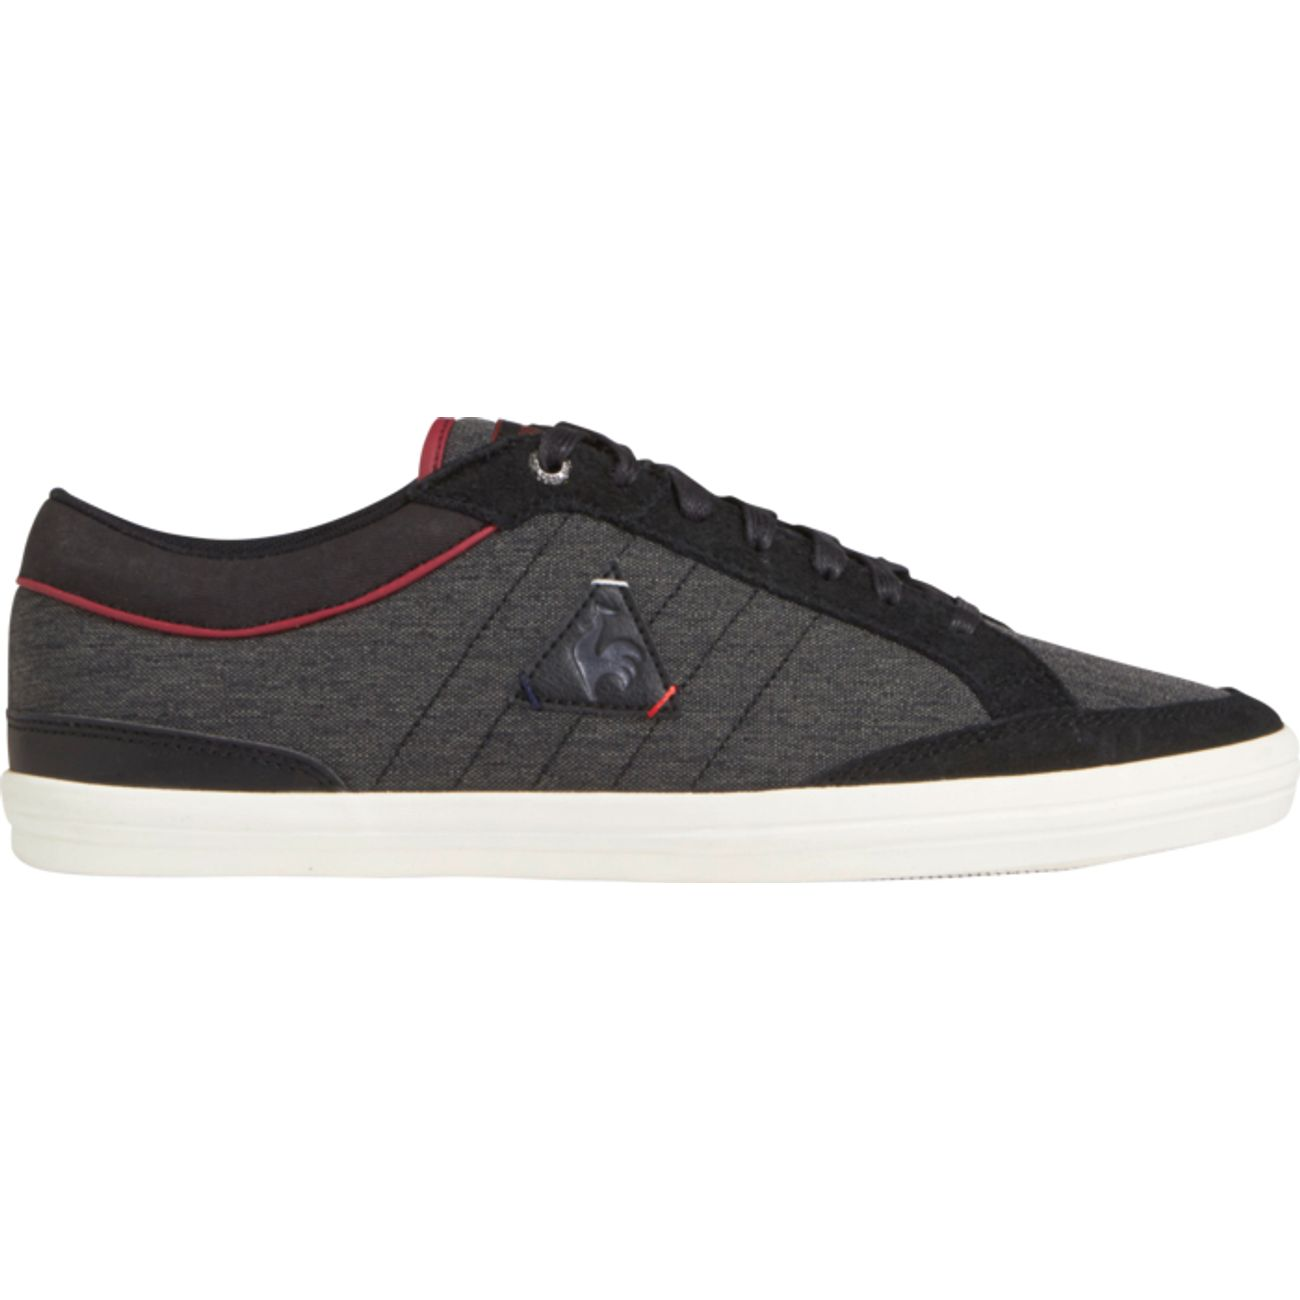 CHAUSSURES BASSES Loisirs homme LE COQ SPORTIF FERET CRAFT